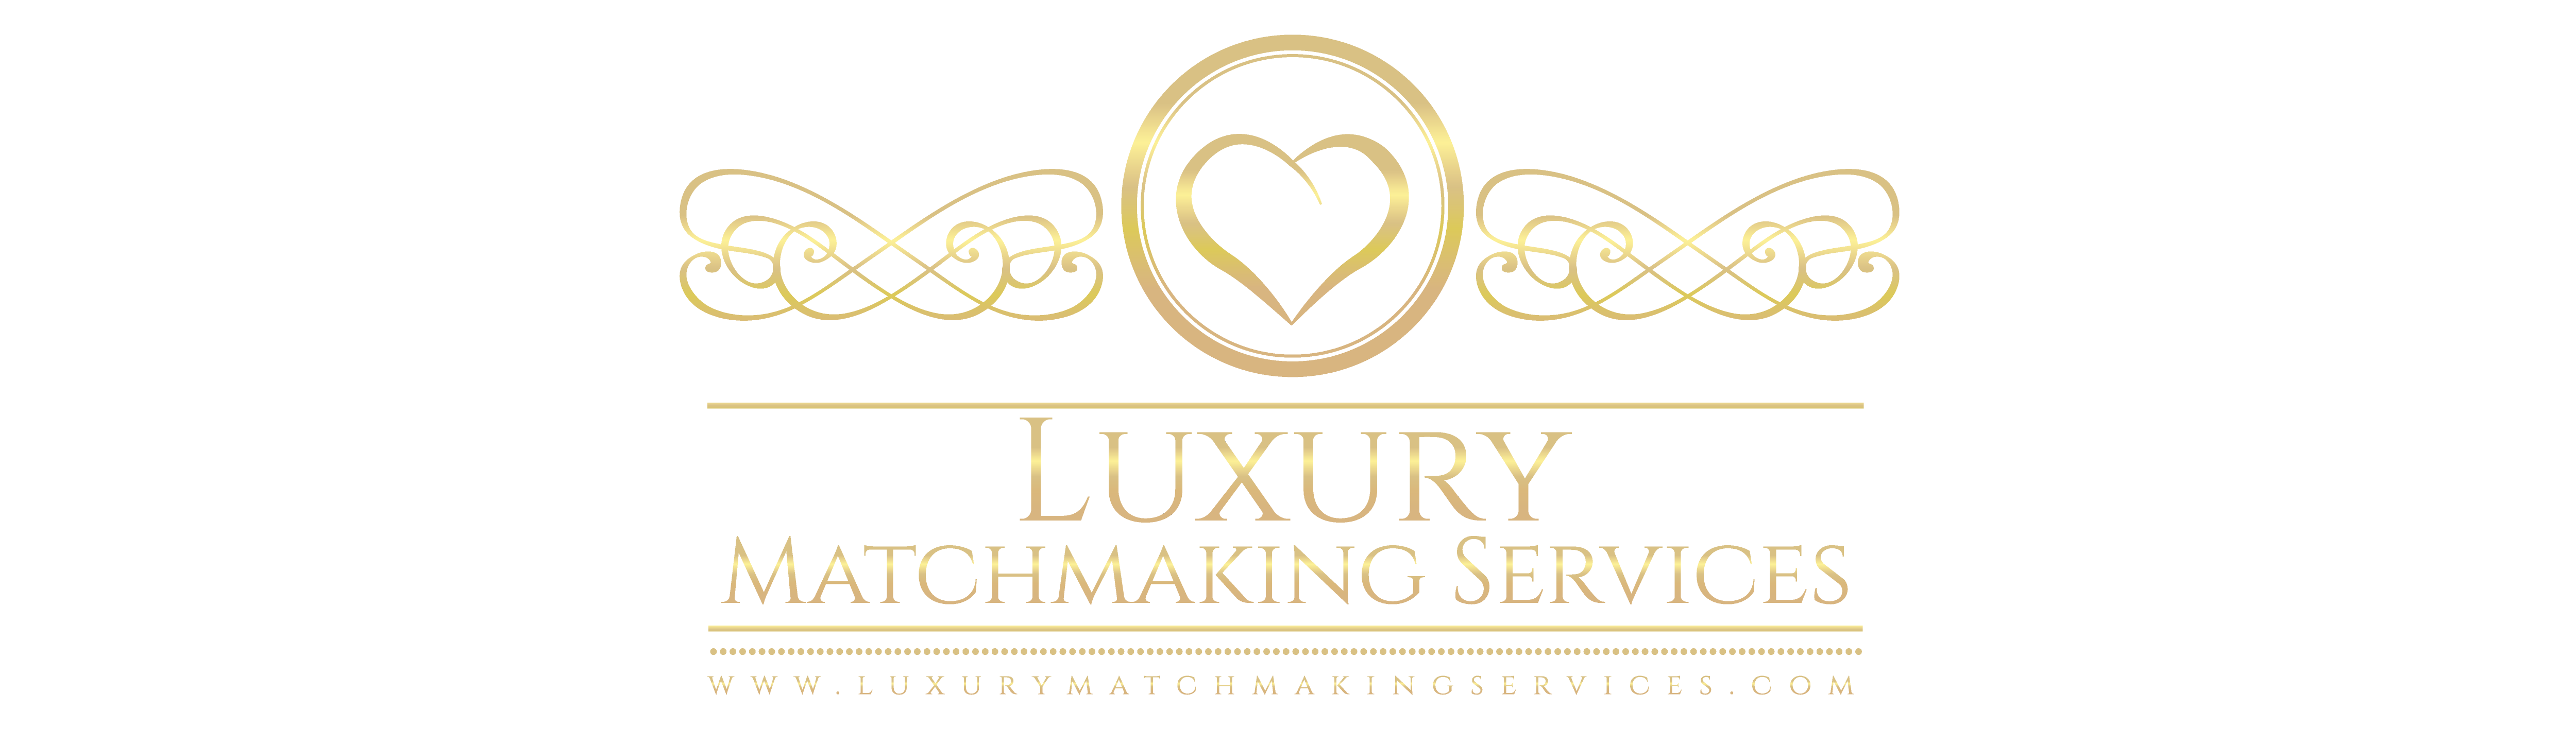 Luxury matchmaking services